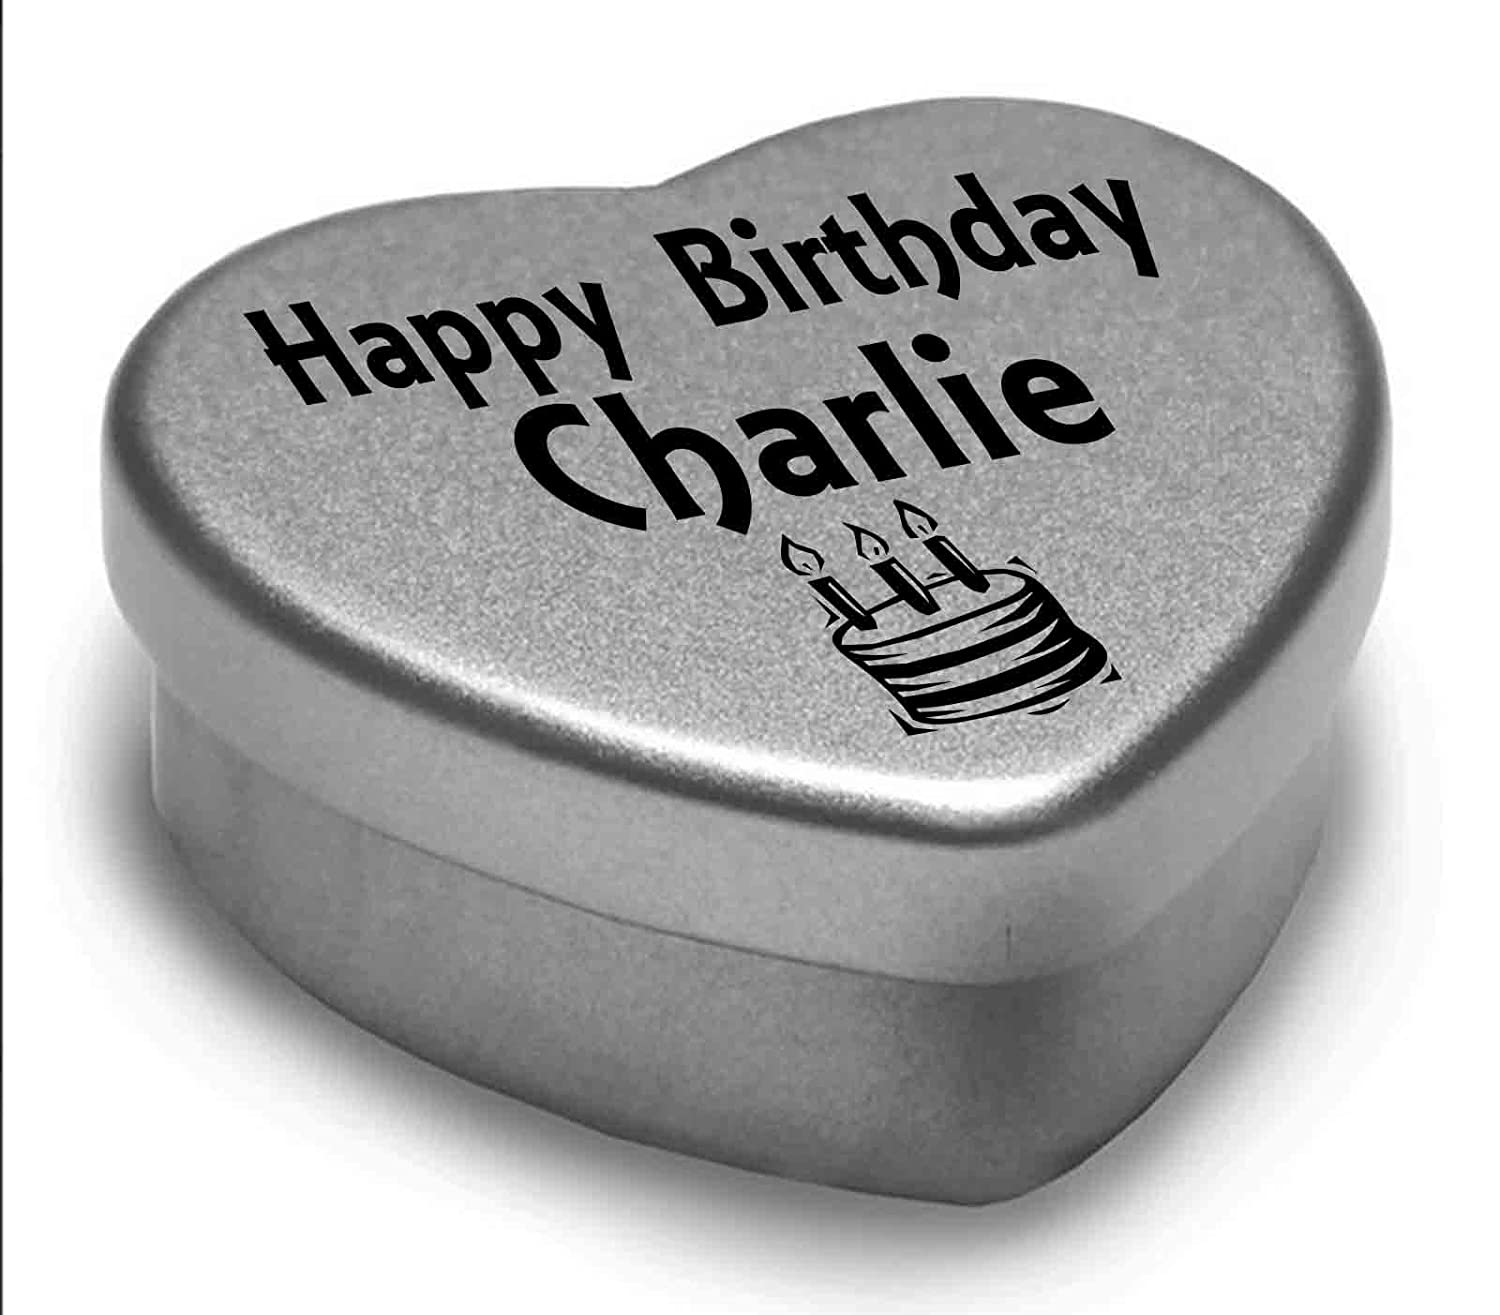 Happy Birthday Charlie Mini Heart Tin Gift Present For Charlie WIth Chocolates